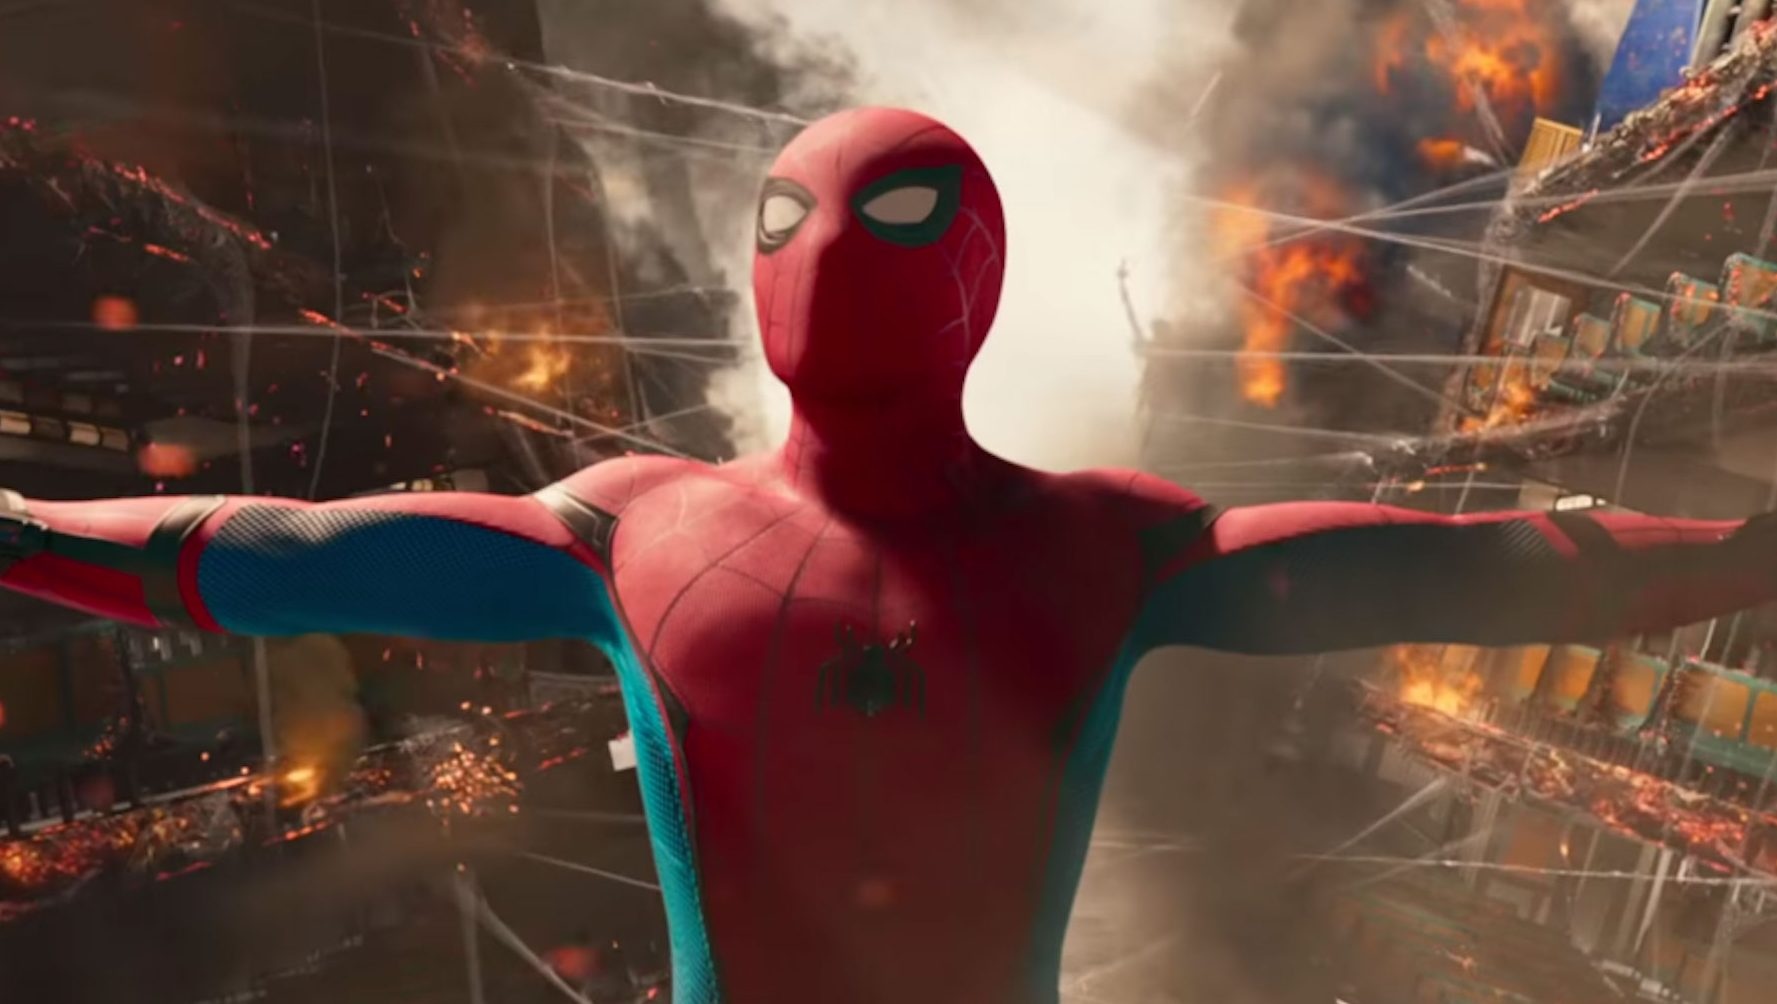 'Spider-Man: Homecoming' Trailer Shows Tom Holland Fit for the Great Responsibility